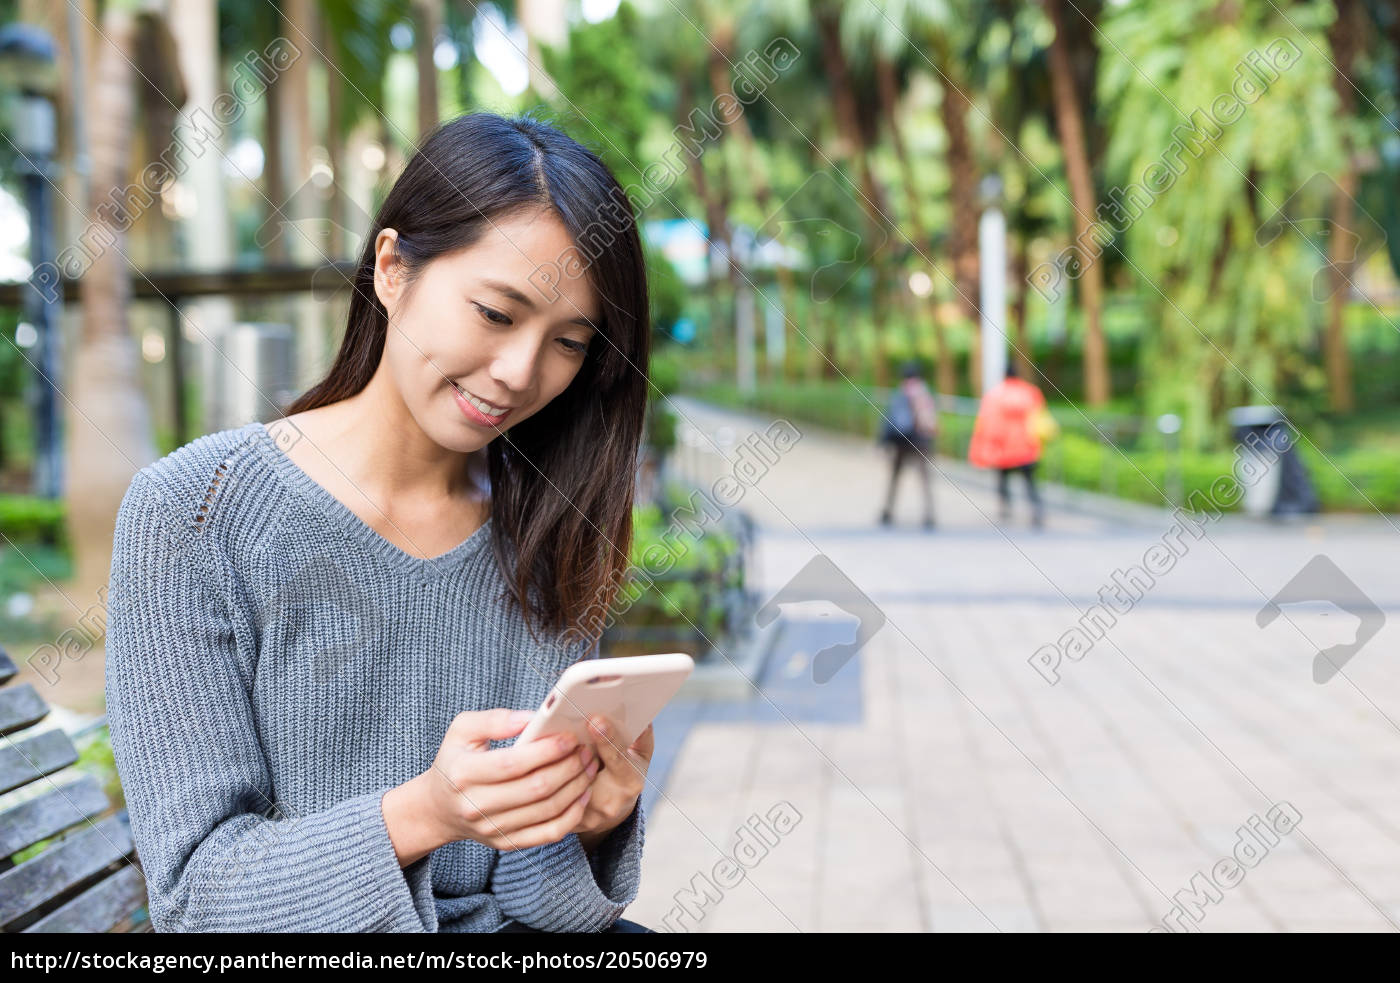 woman, use, of, cellphone, at, park - 20506979